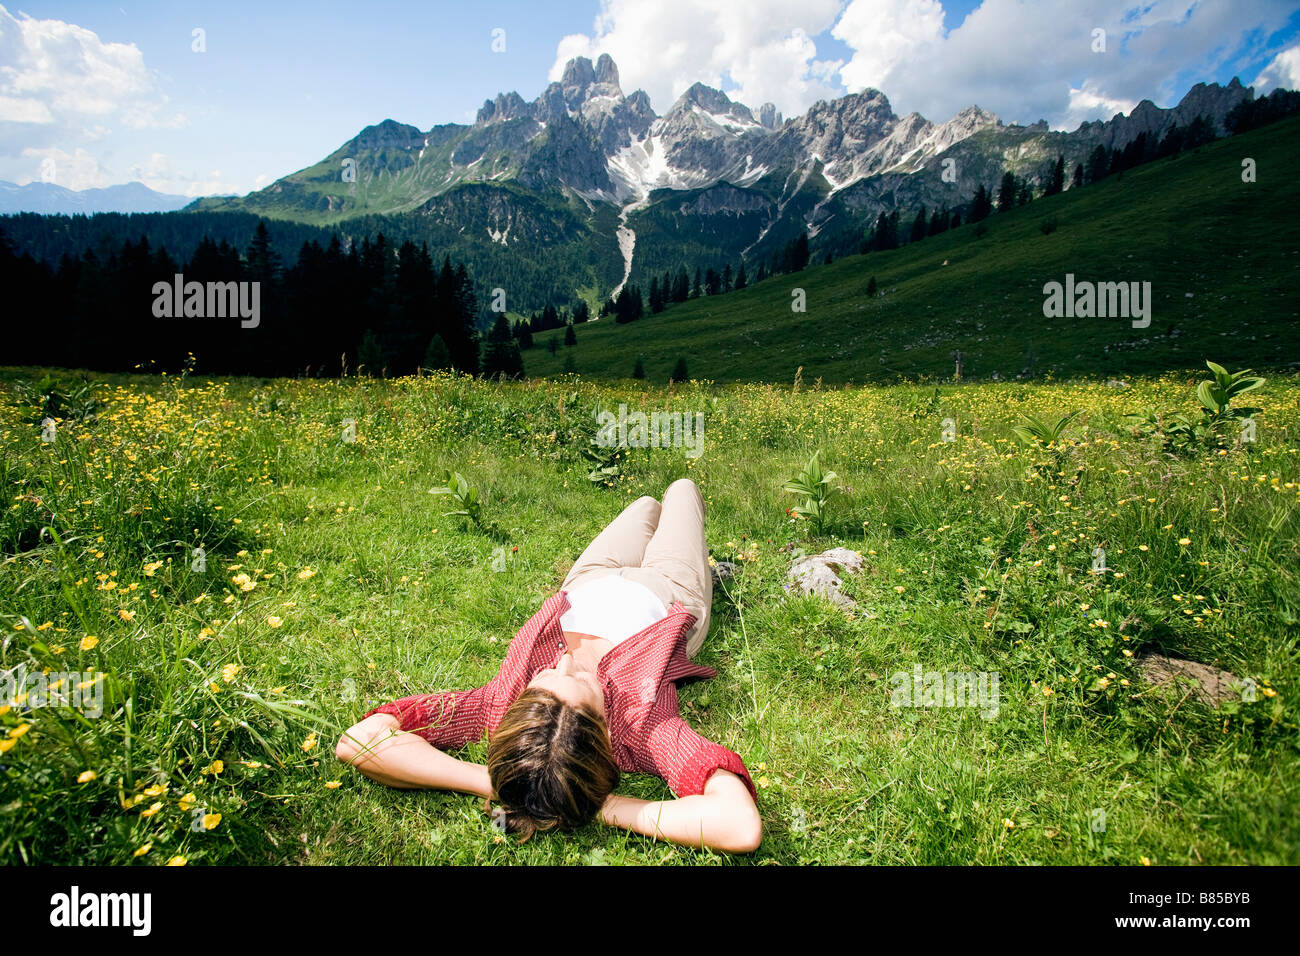 mature woman lying in grass in the mountains relaxing - Stock Image